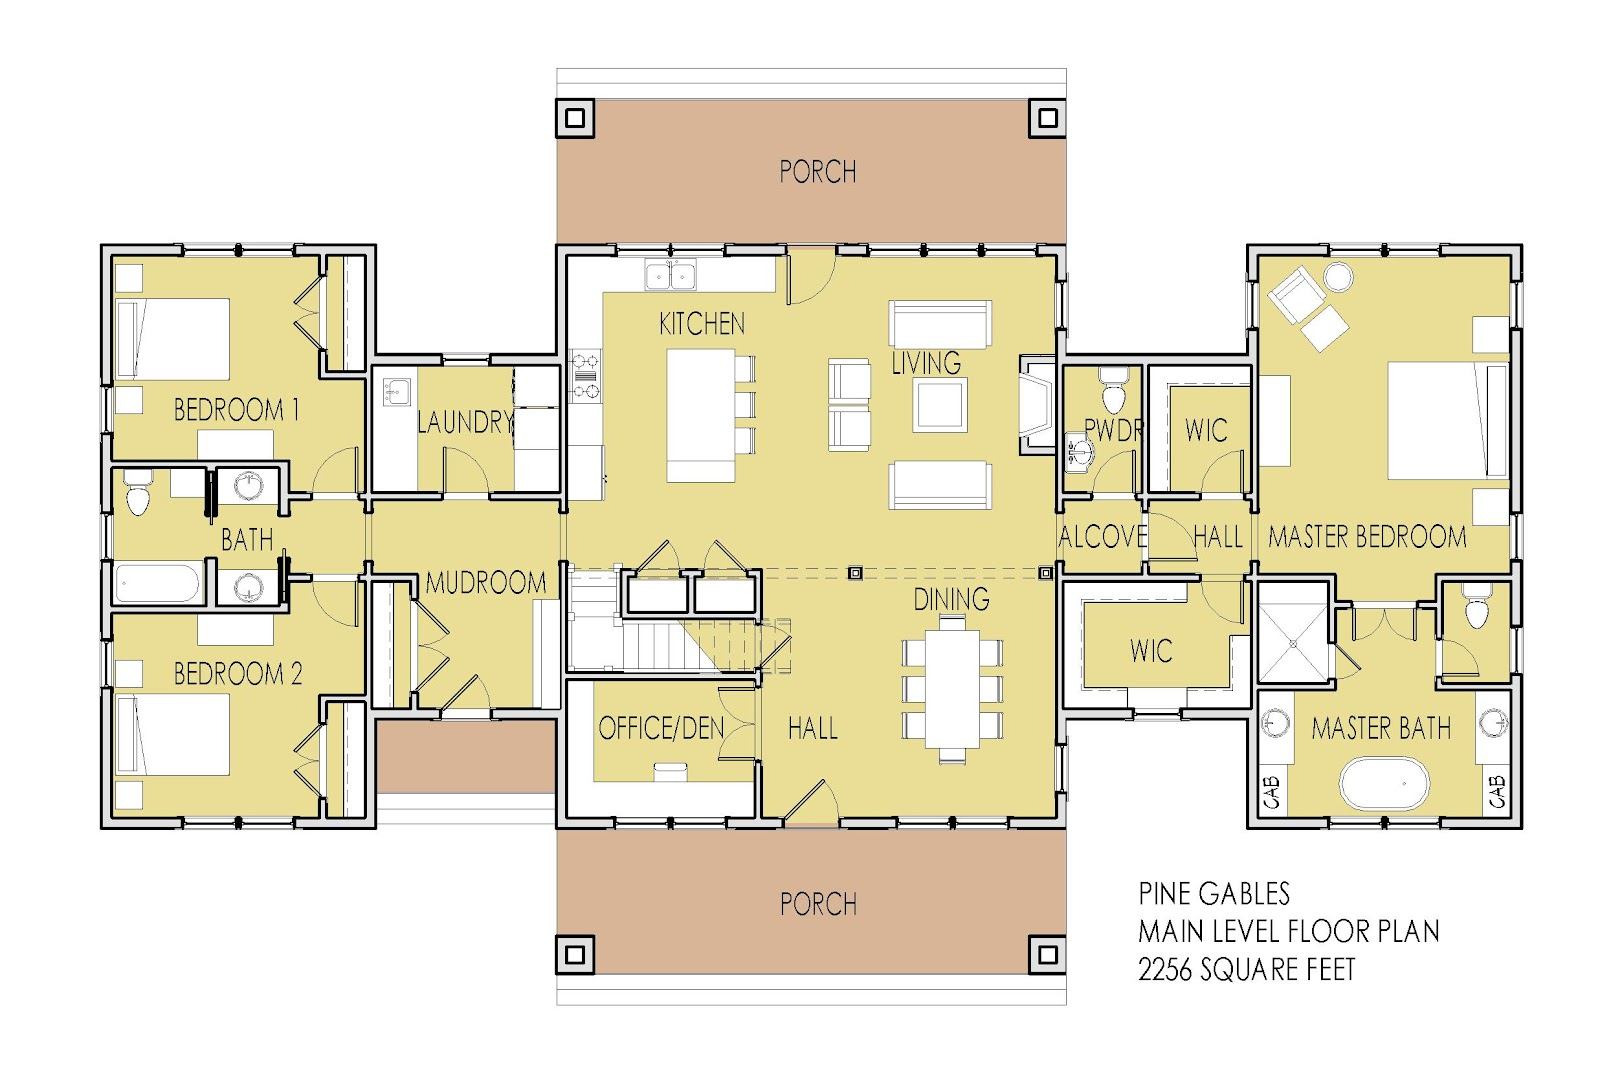 Main level floor plan features one level living with main floor master bedroom suite 2 additional bedrooms and a vaulted great room space